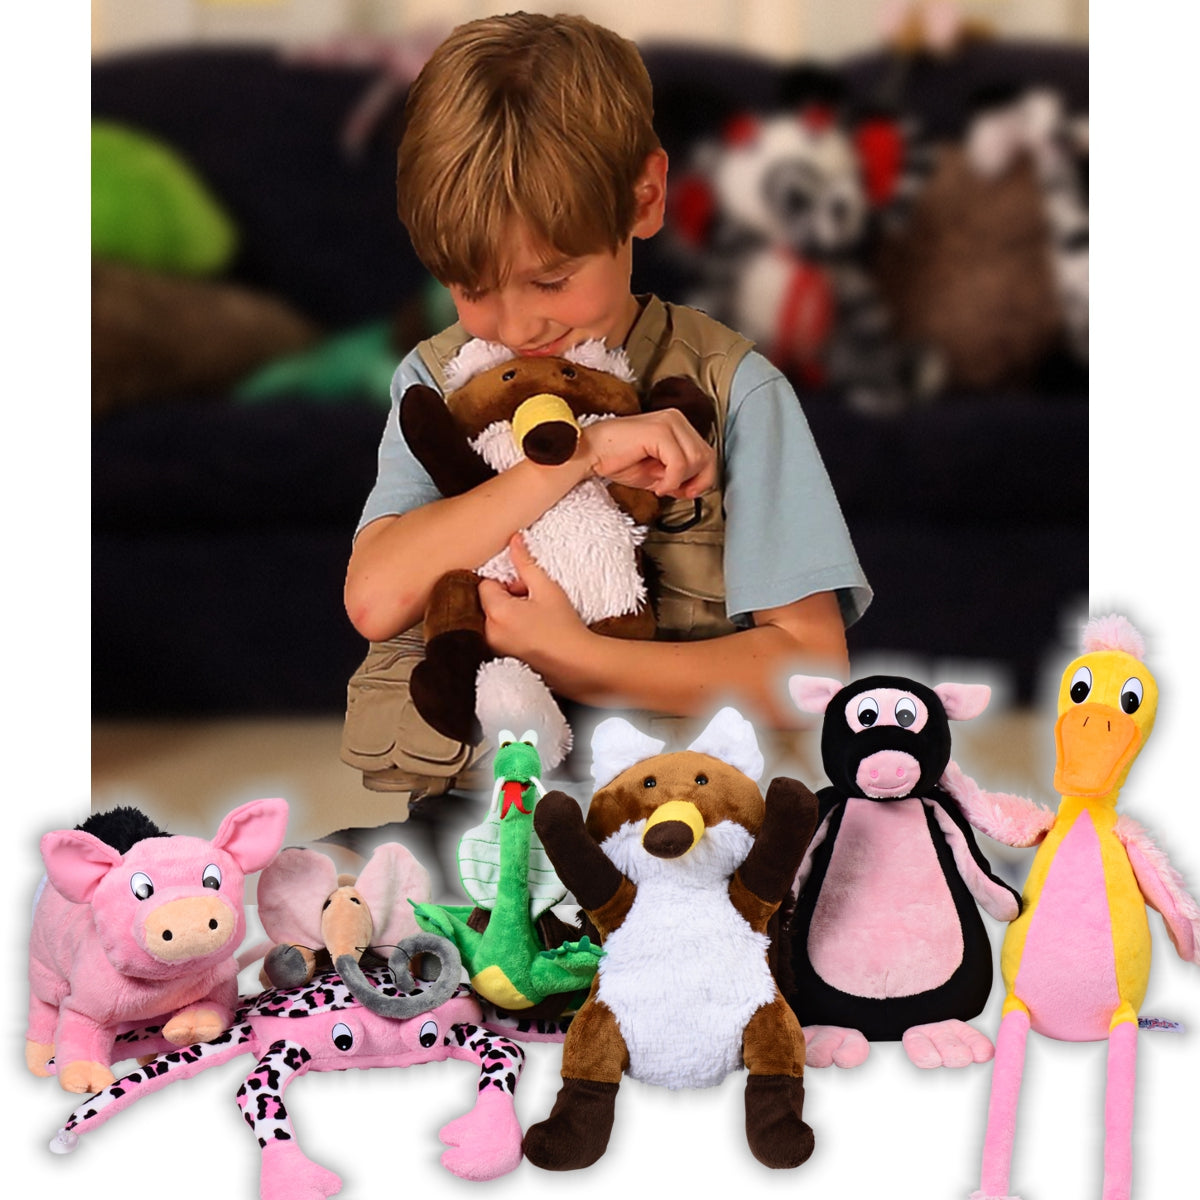 Win a free Genetipetz Stuffed Animal